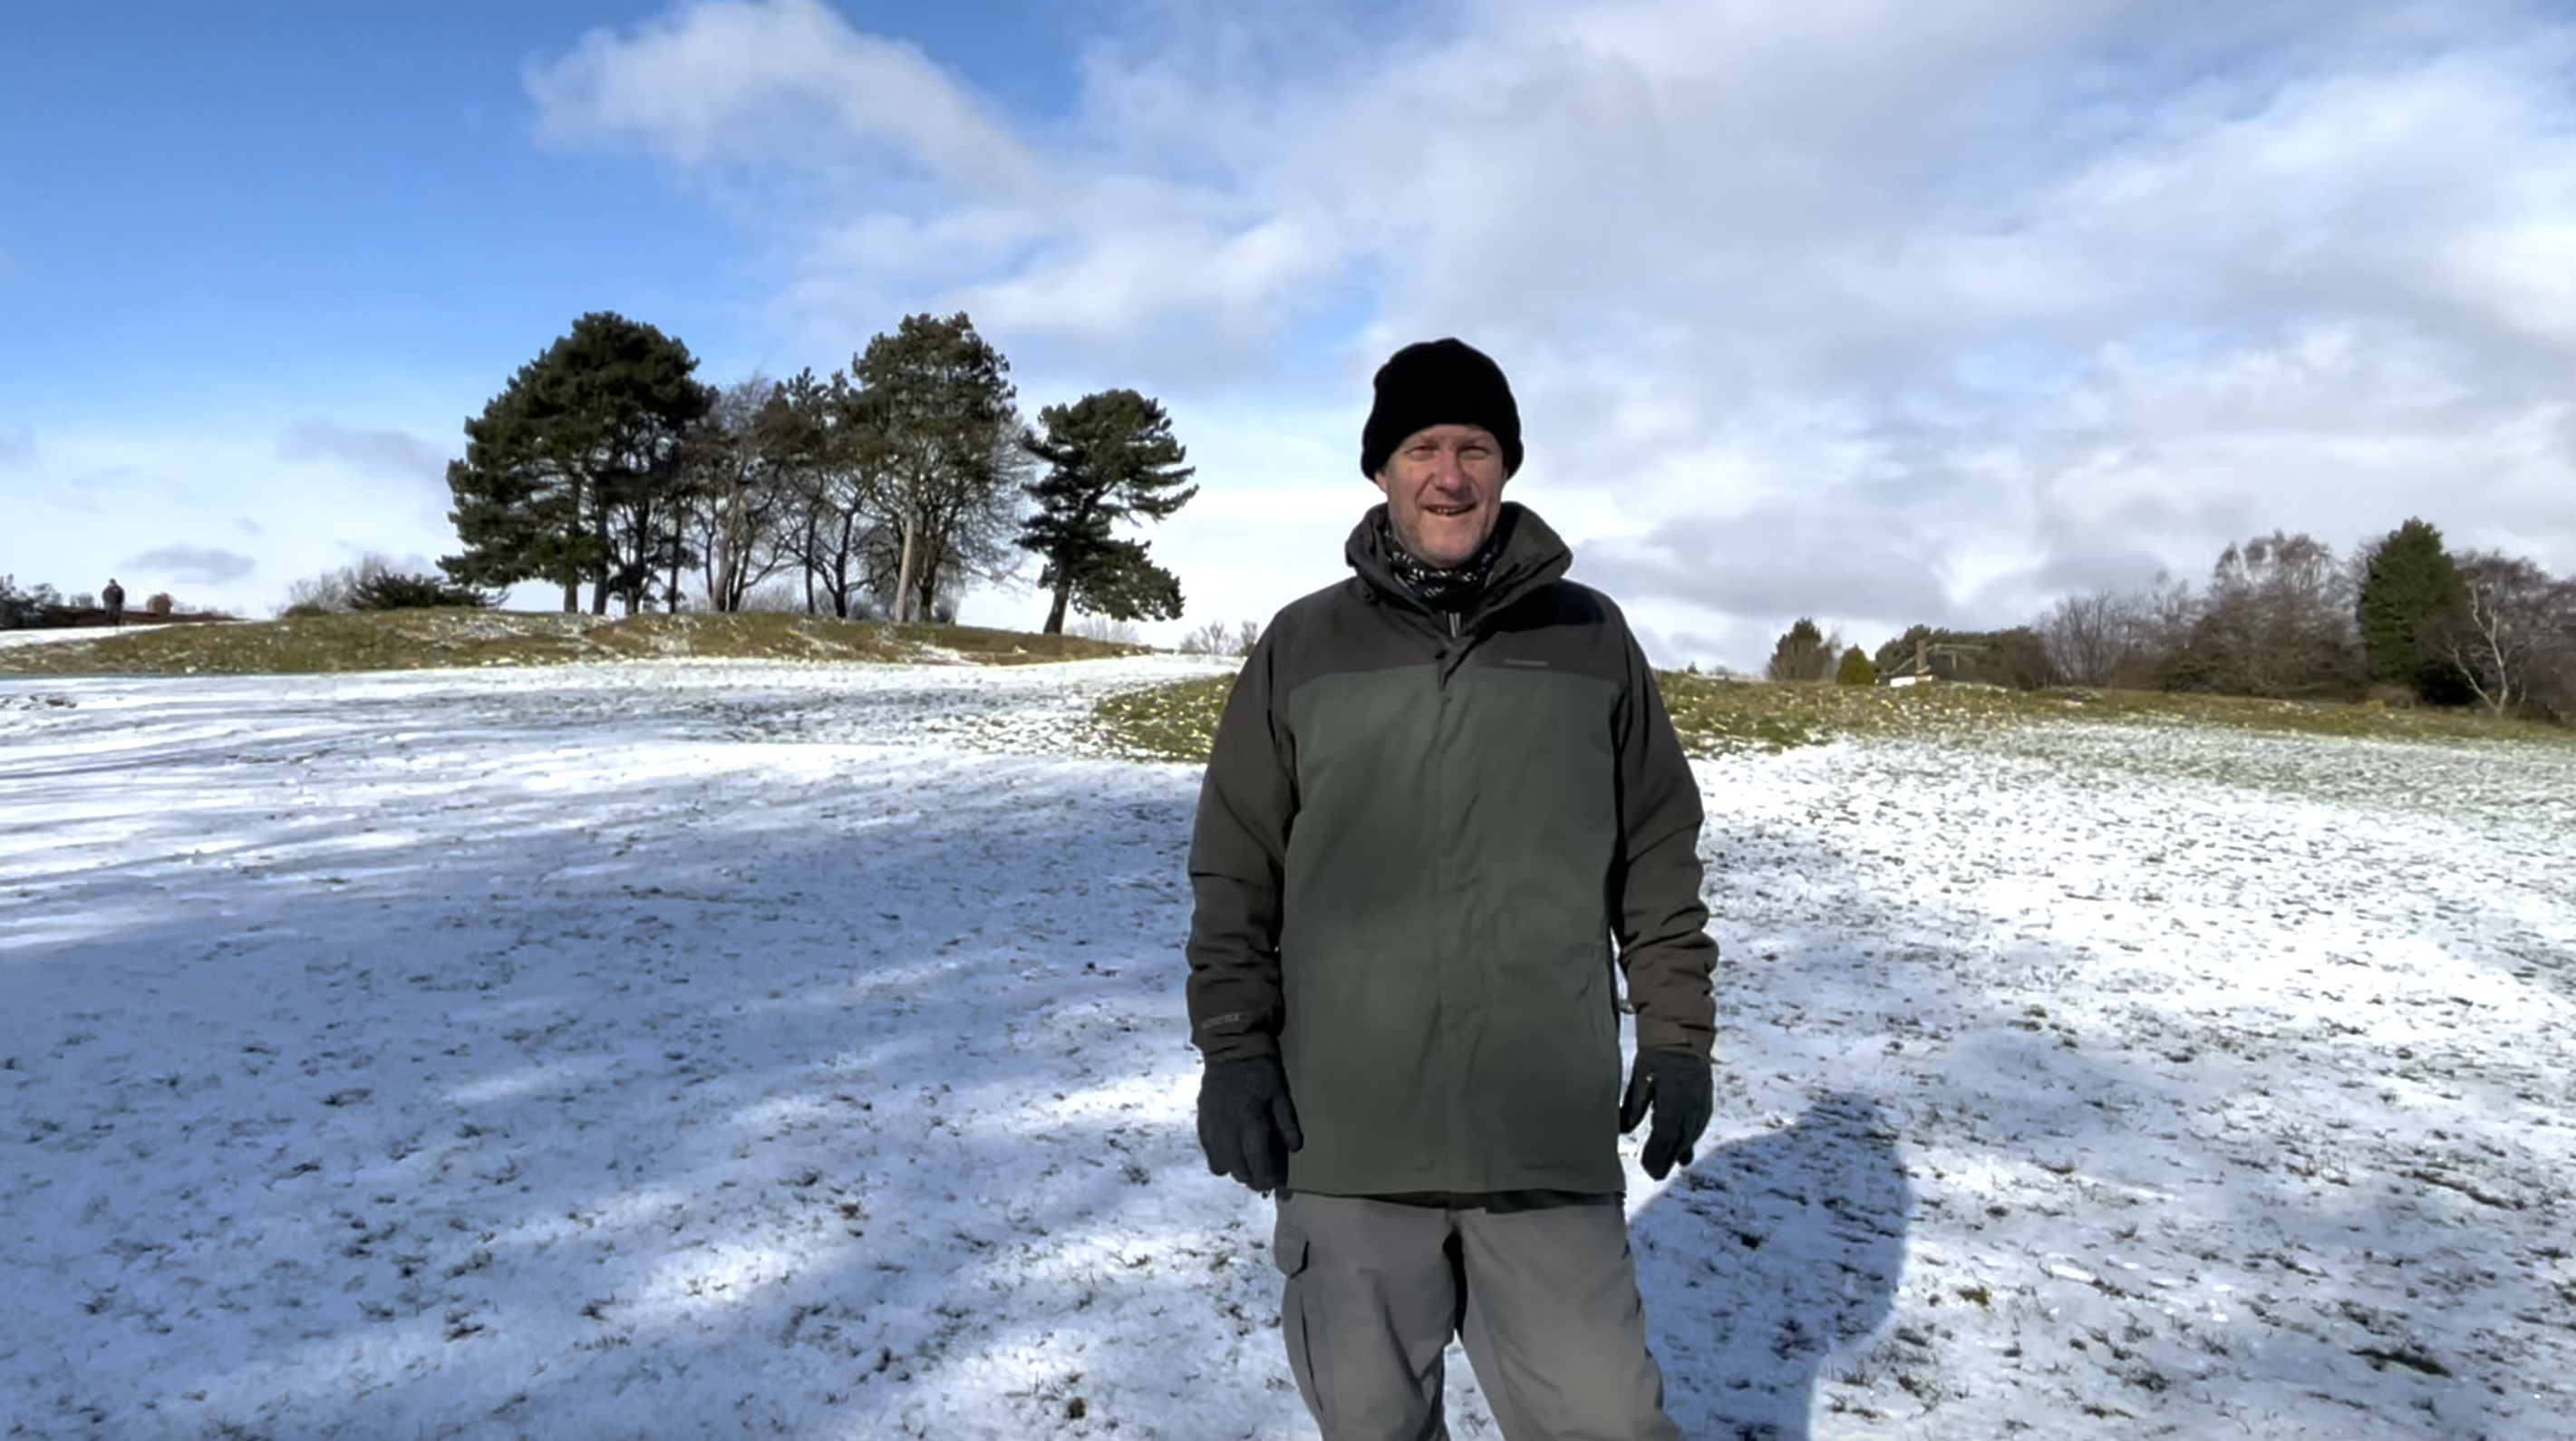 Chris stood on a snowy Bachelor Hill